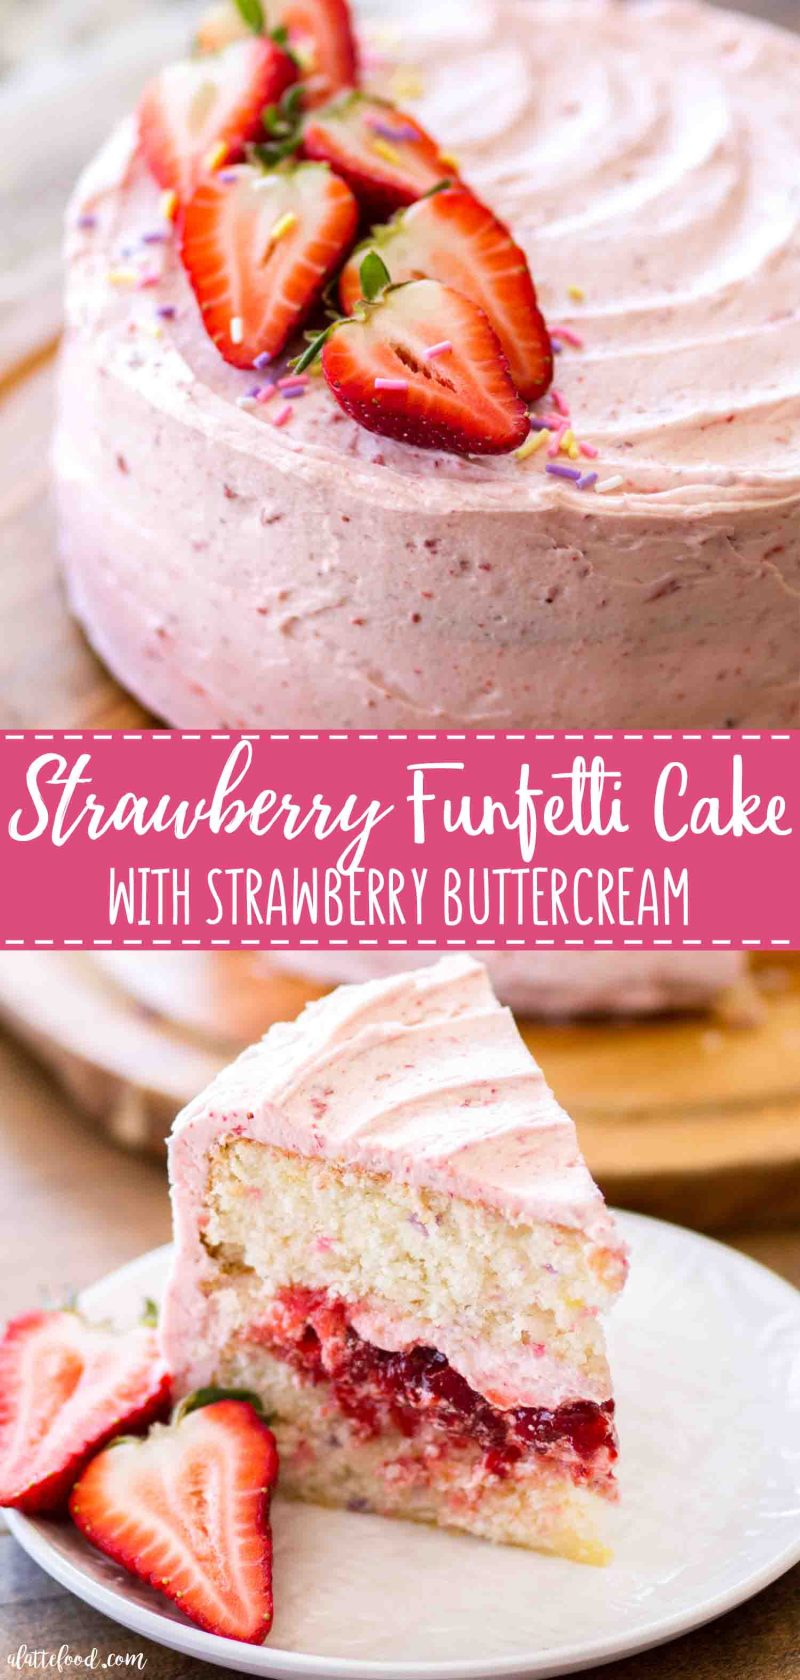 The best strawberry funfetti cake with homemade strawberry buttercream (easy strawberry frosting)